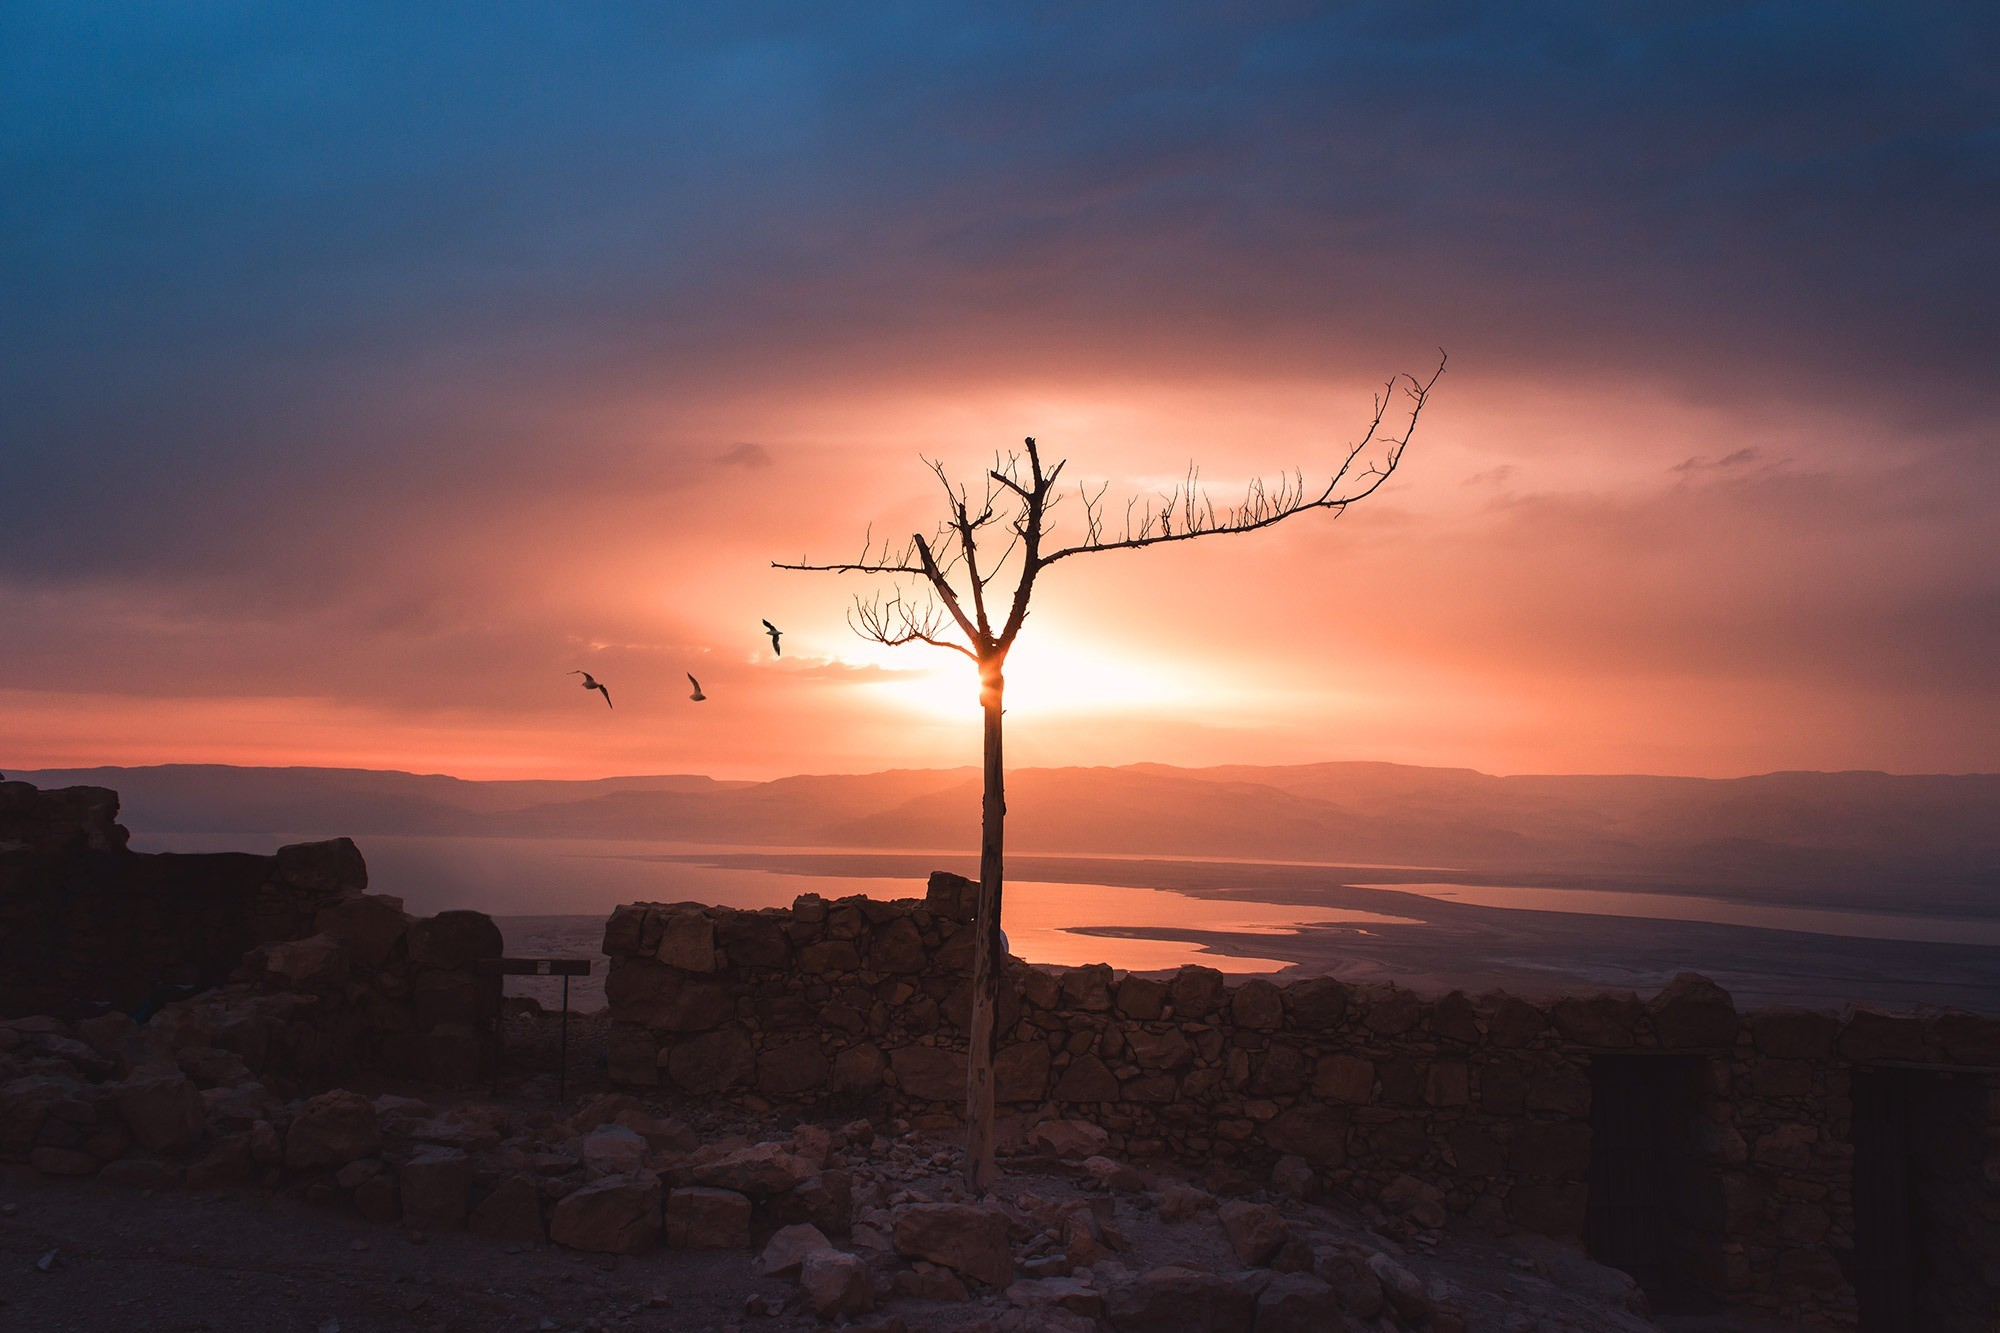 Sunrise in Masada